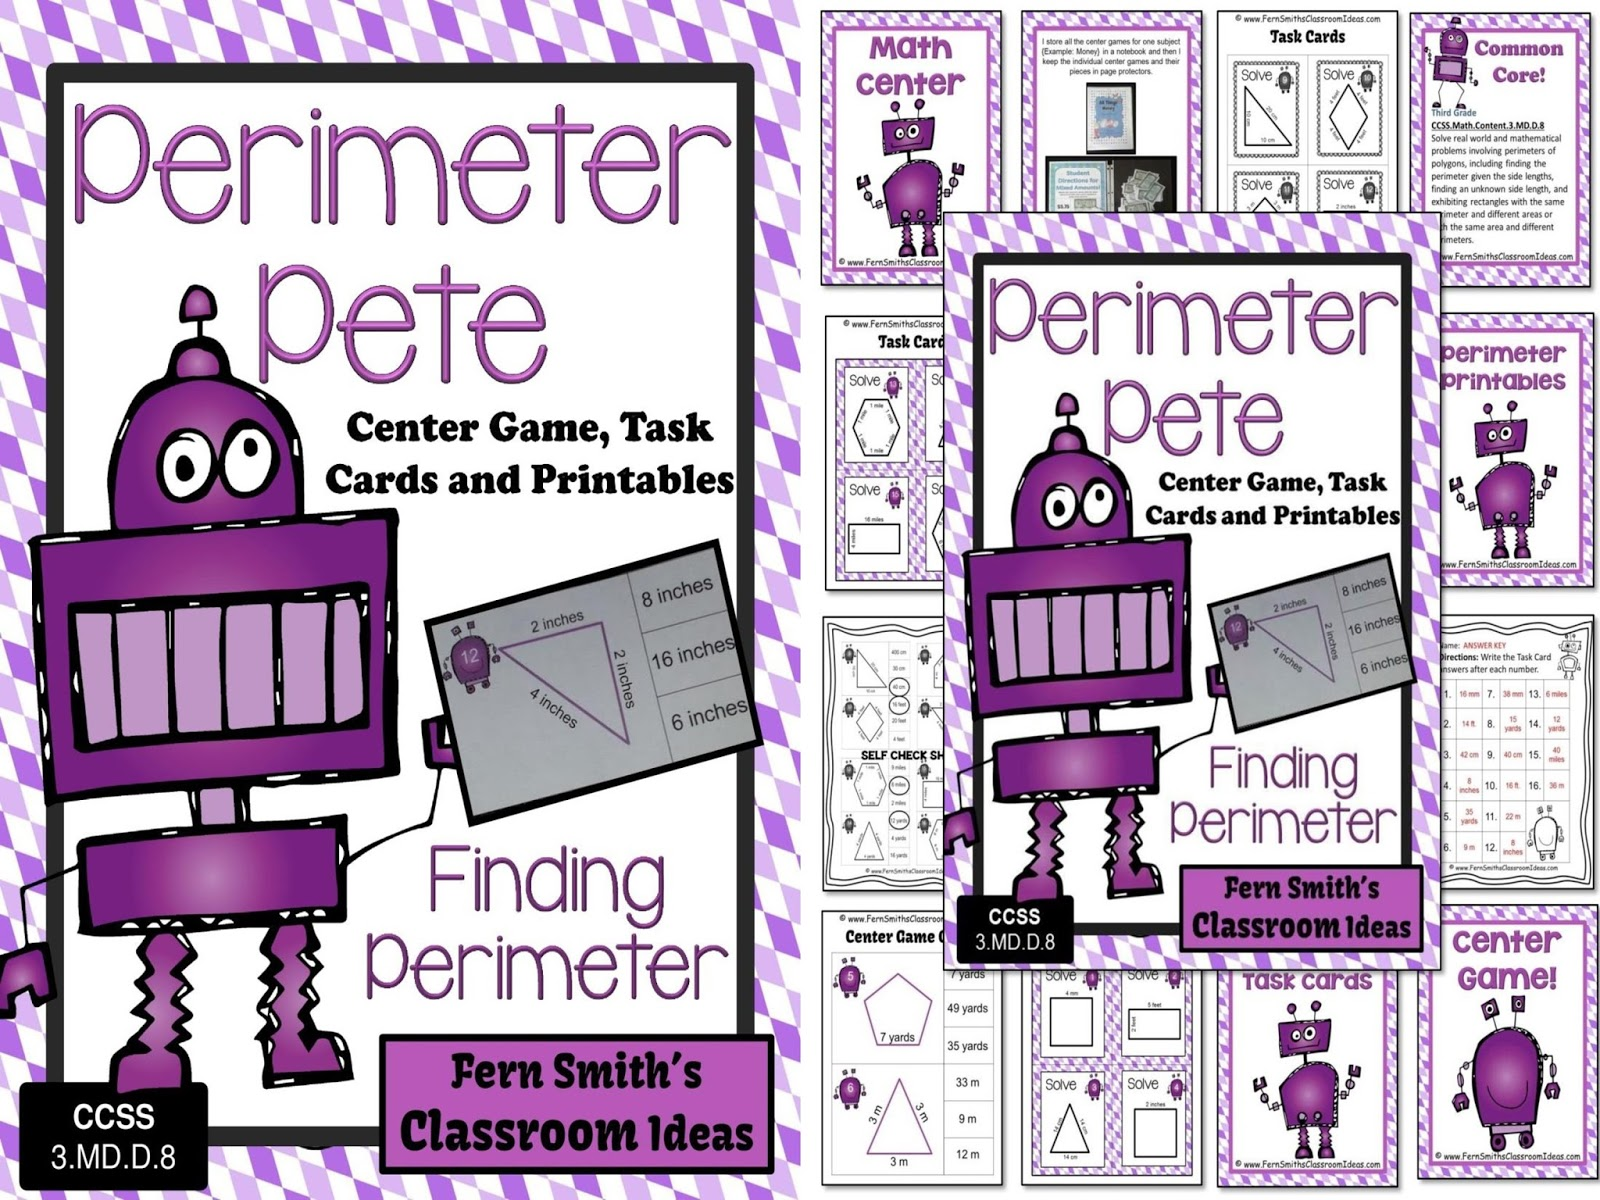 https://www.teacherspayteachers.com/Product/Perimeter-1200366